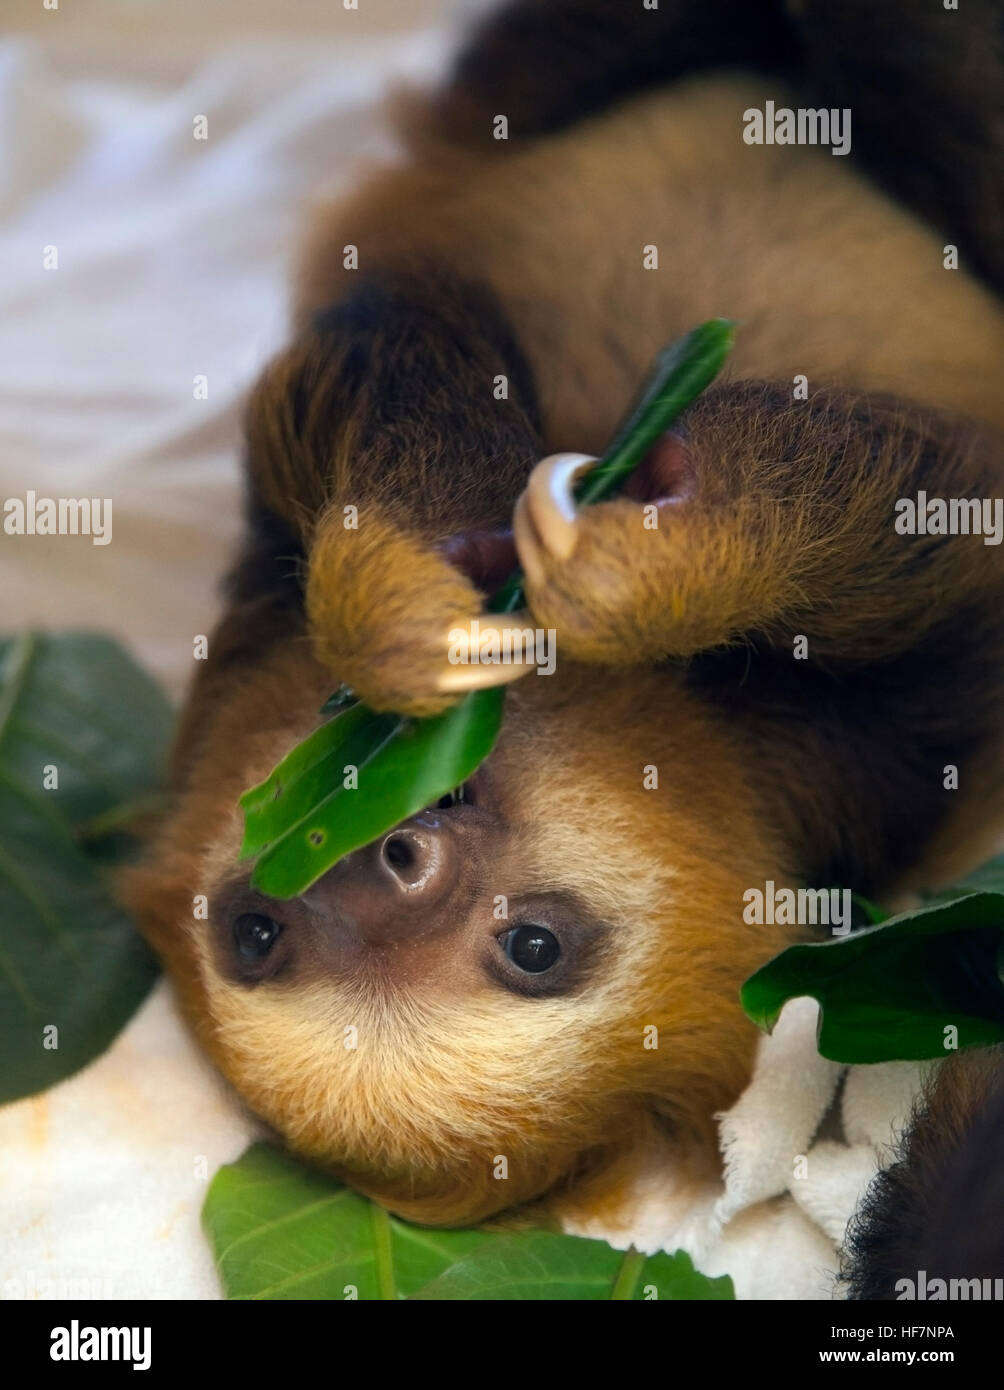 Baby orphaned Hoffmann's Two-toed Sloth (Choloepus hoffmanni) feeding on leaves at the Sloth Sanctuary Stock Photo